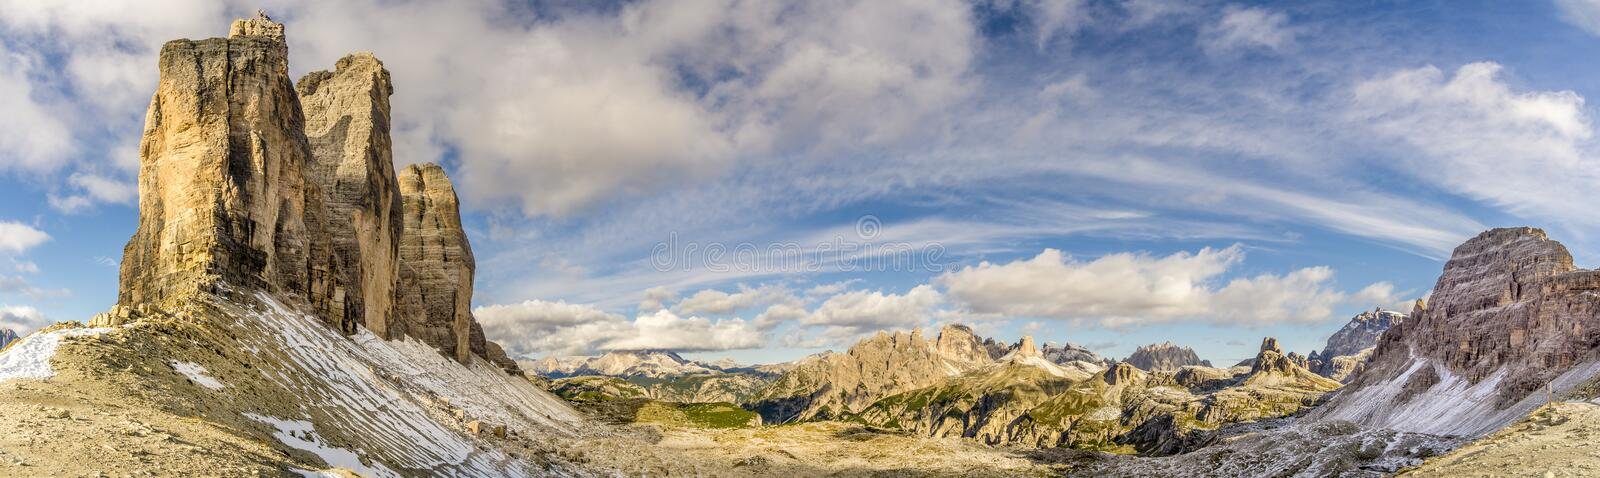 Panoramic view to the valley from Forcella Lavaredo near Tre Cime in Dolomites - Itaôy stock photos